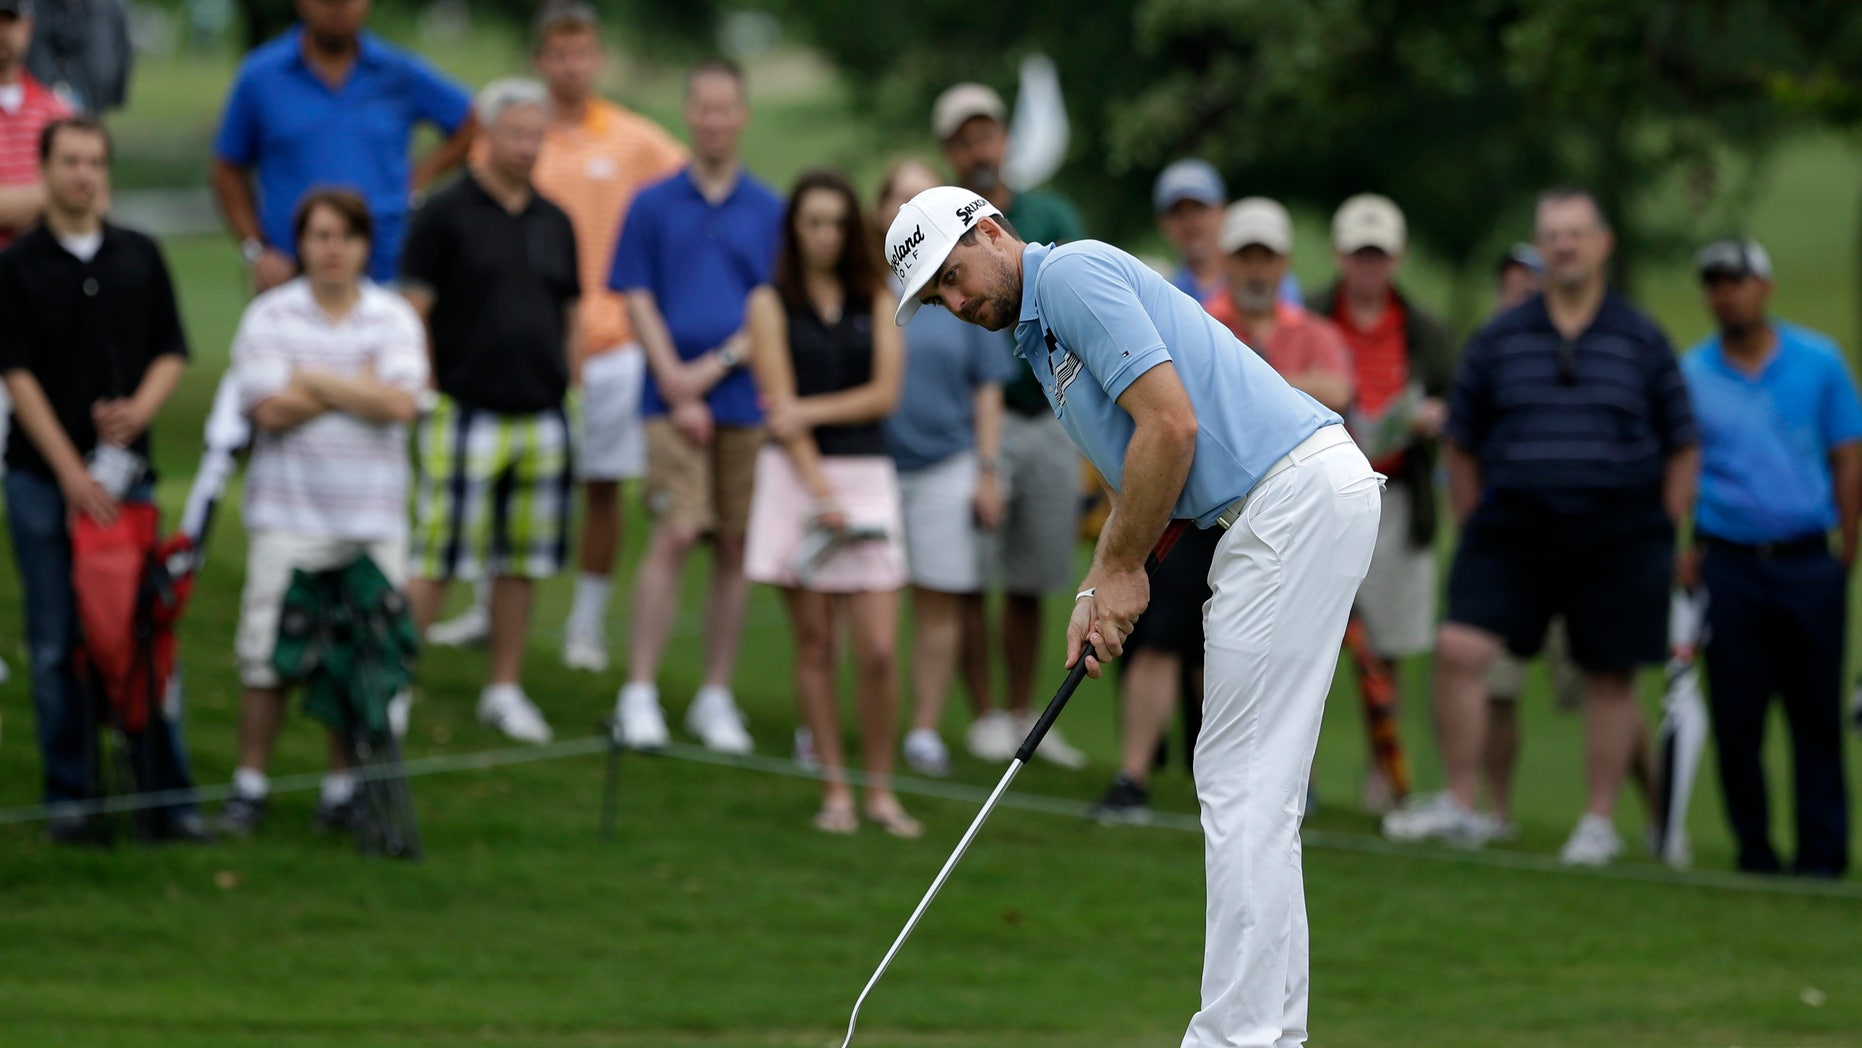 Keegan Bradley watches his birdie putt on the second green during the first round of the Byron Nelson Championship golf tournament Thursday, May 16, 2013, in Irving, Texas. Bradley finished the day with course record 10-under par 60. (AP Photo/Tony Gutierrez)